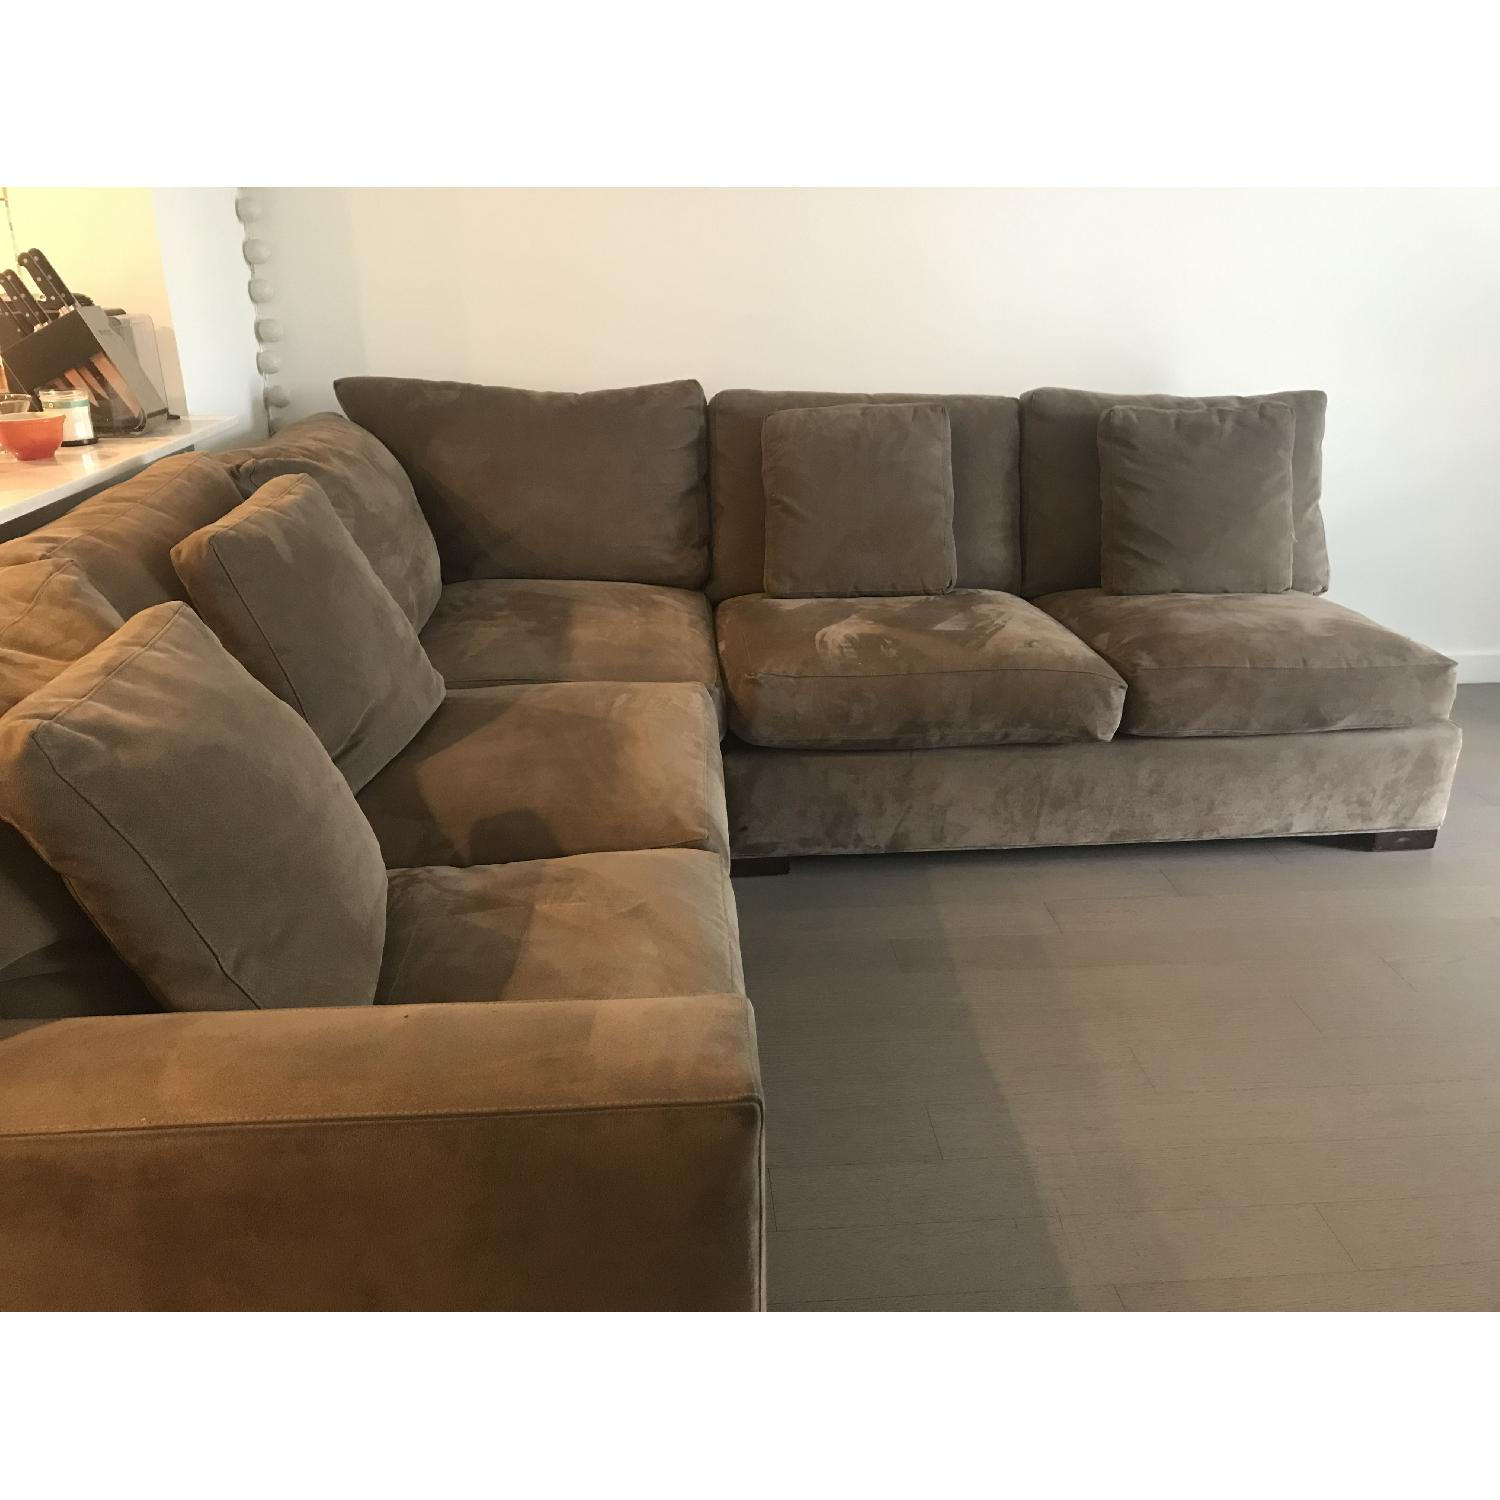 Crate & Barrel Axis 3-Piece Sectional Sofa - image-0